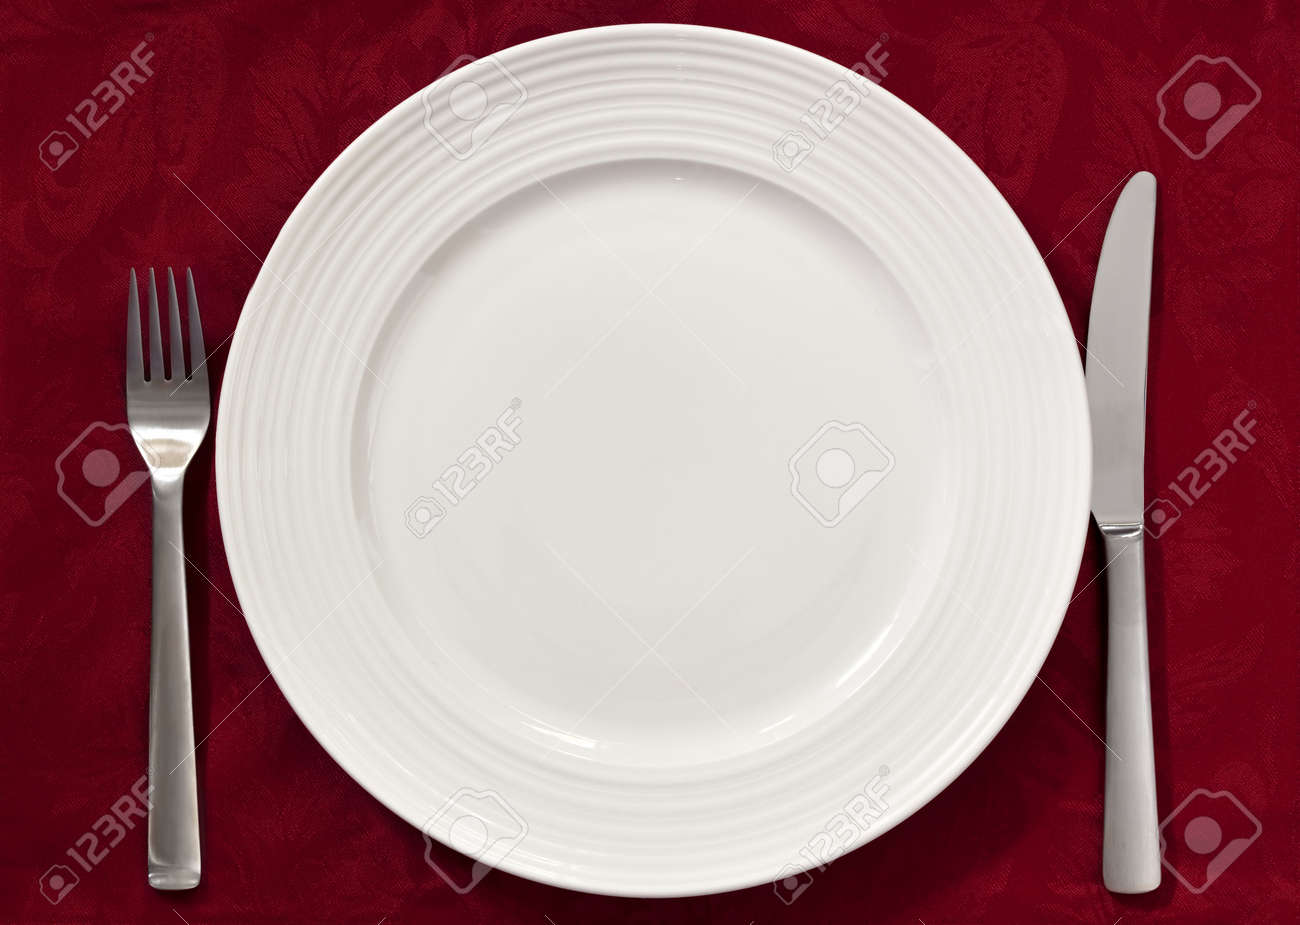 Dinner Setting place setting on red damask tablecloth. silverware and dinner